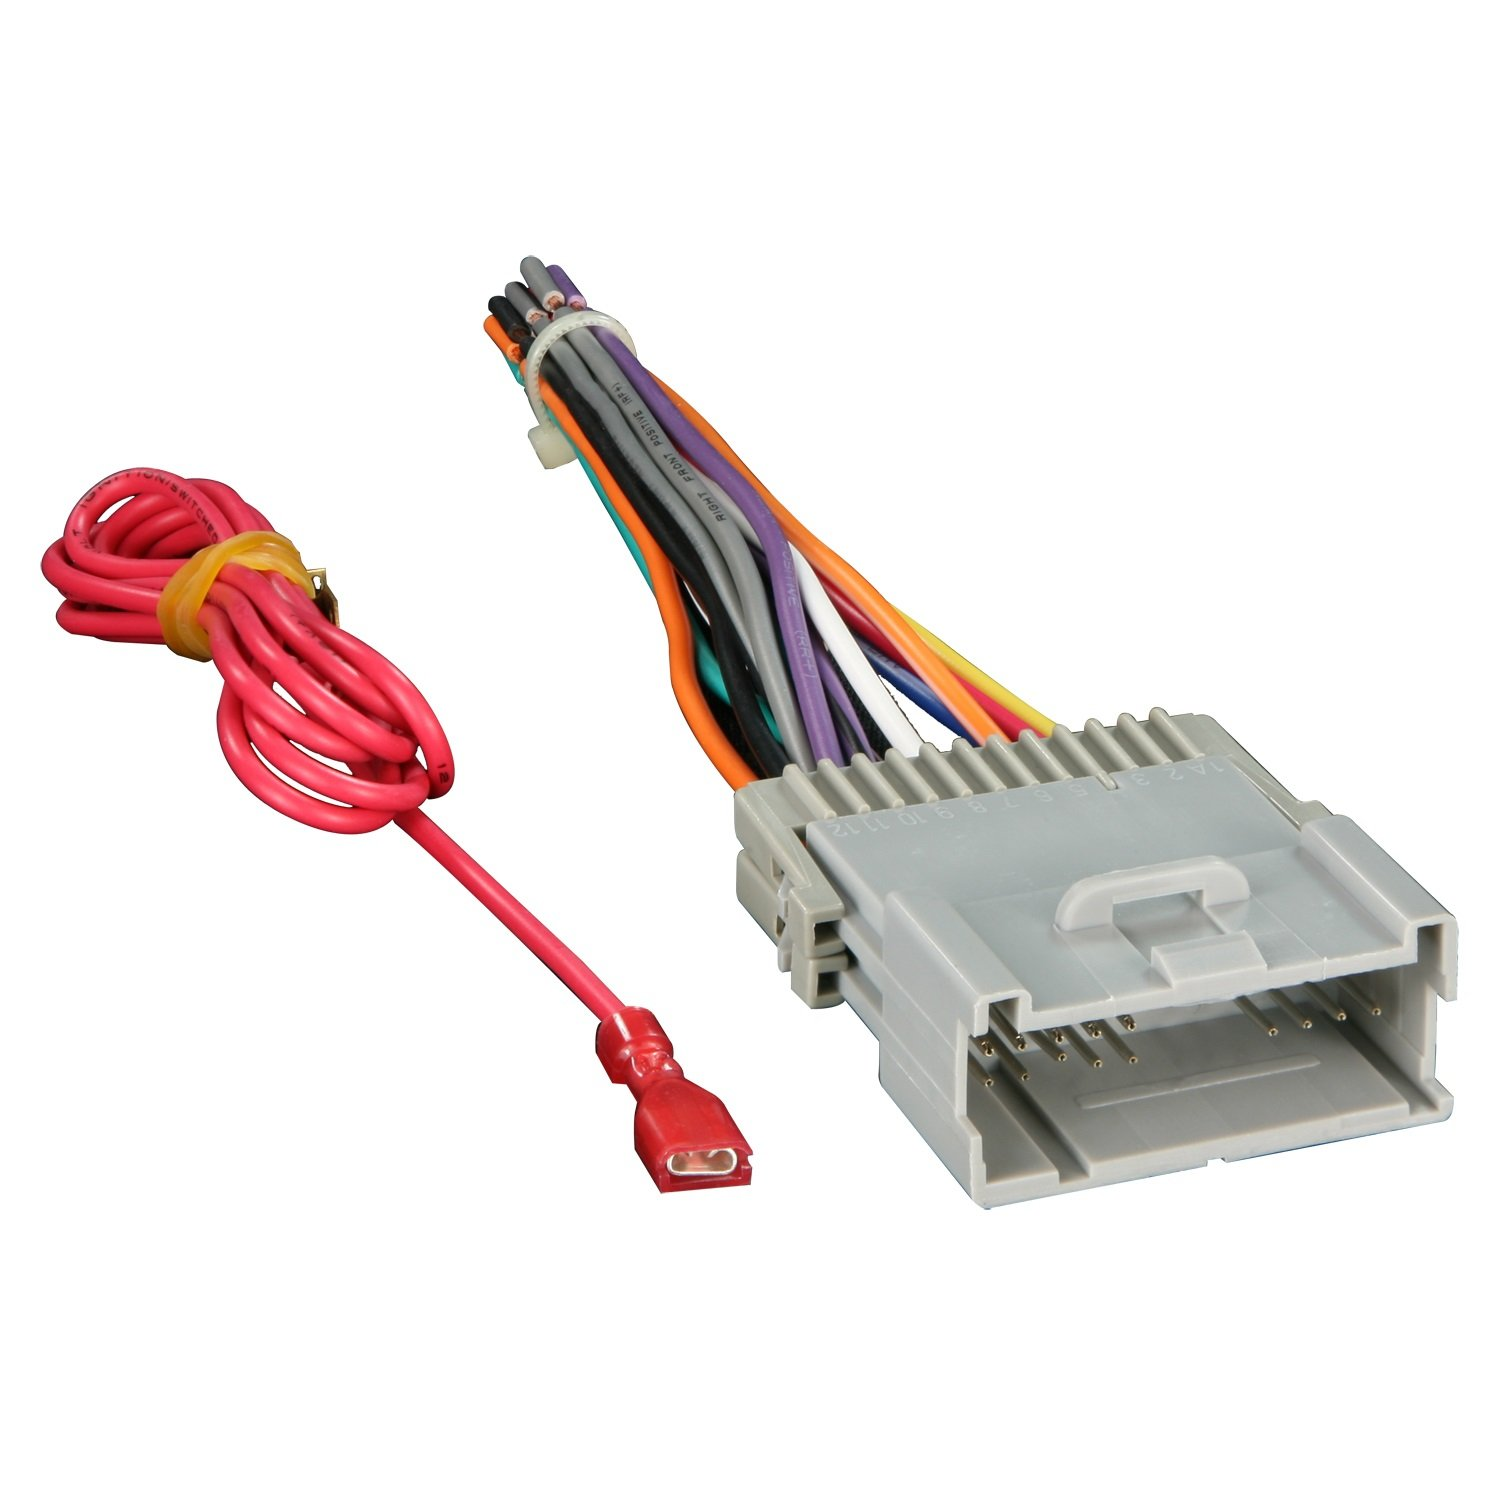 61eewxp9orL._SL1500_ amazon com metra 70 2003 radio wiring harness for gm 98 08 GM Wiring Color Codes at gsmx.co